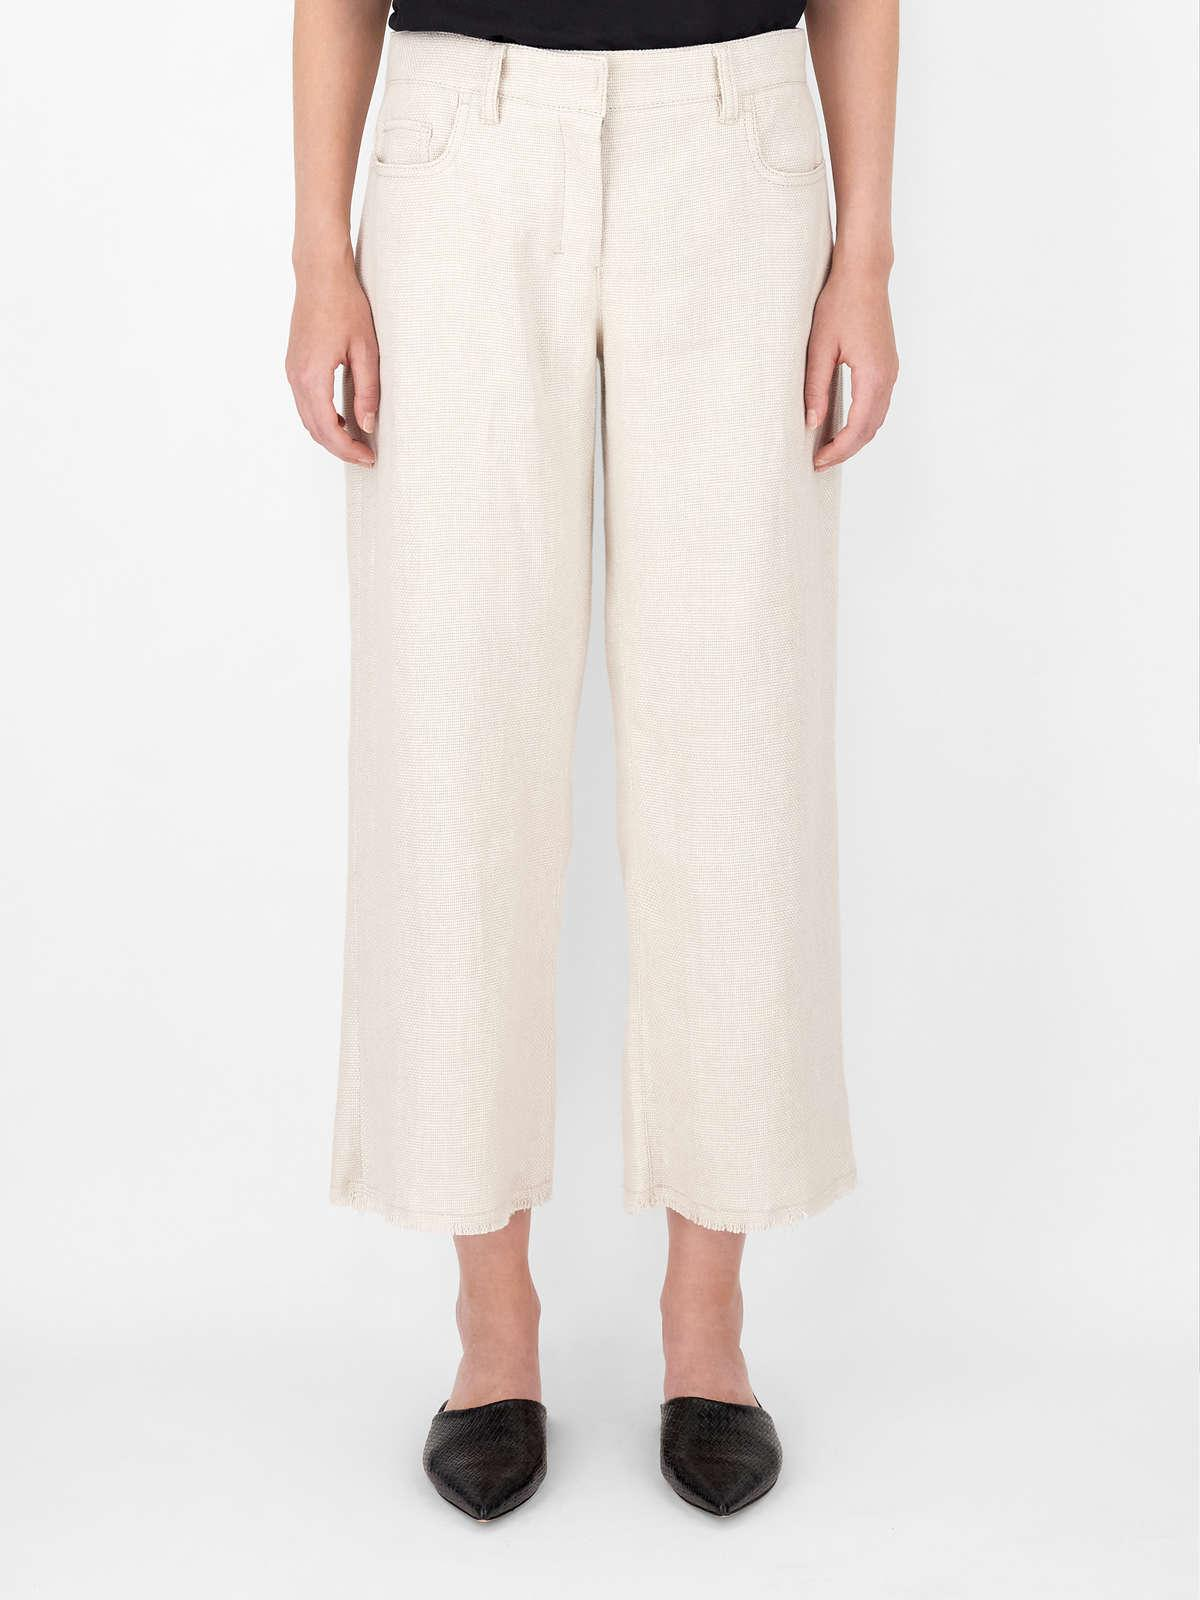 Womens Max Mara Trousers And Jeans | Linen And Cotton Basketweave Trousers Ecru